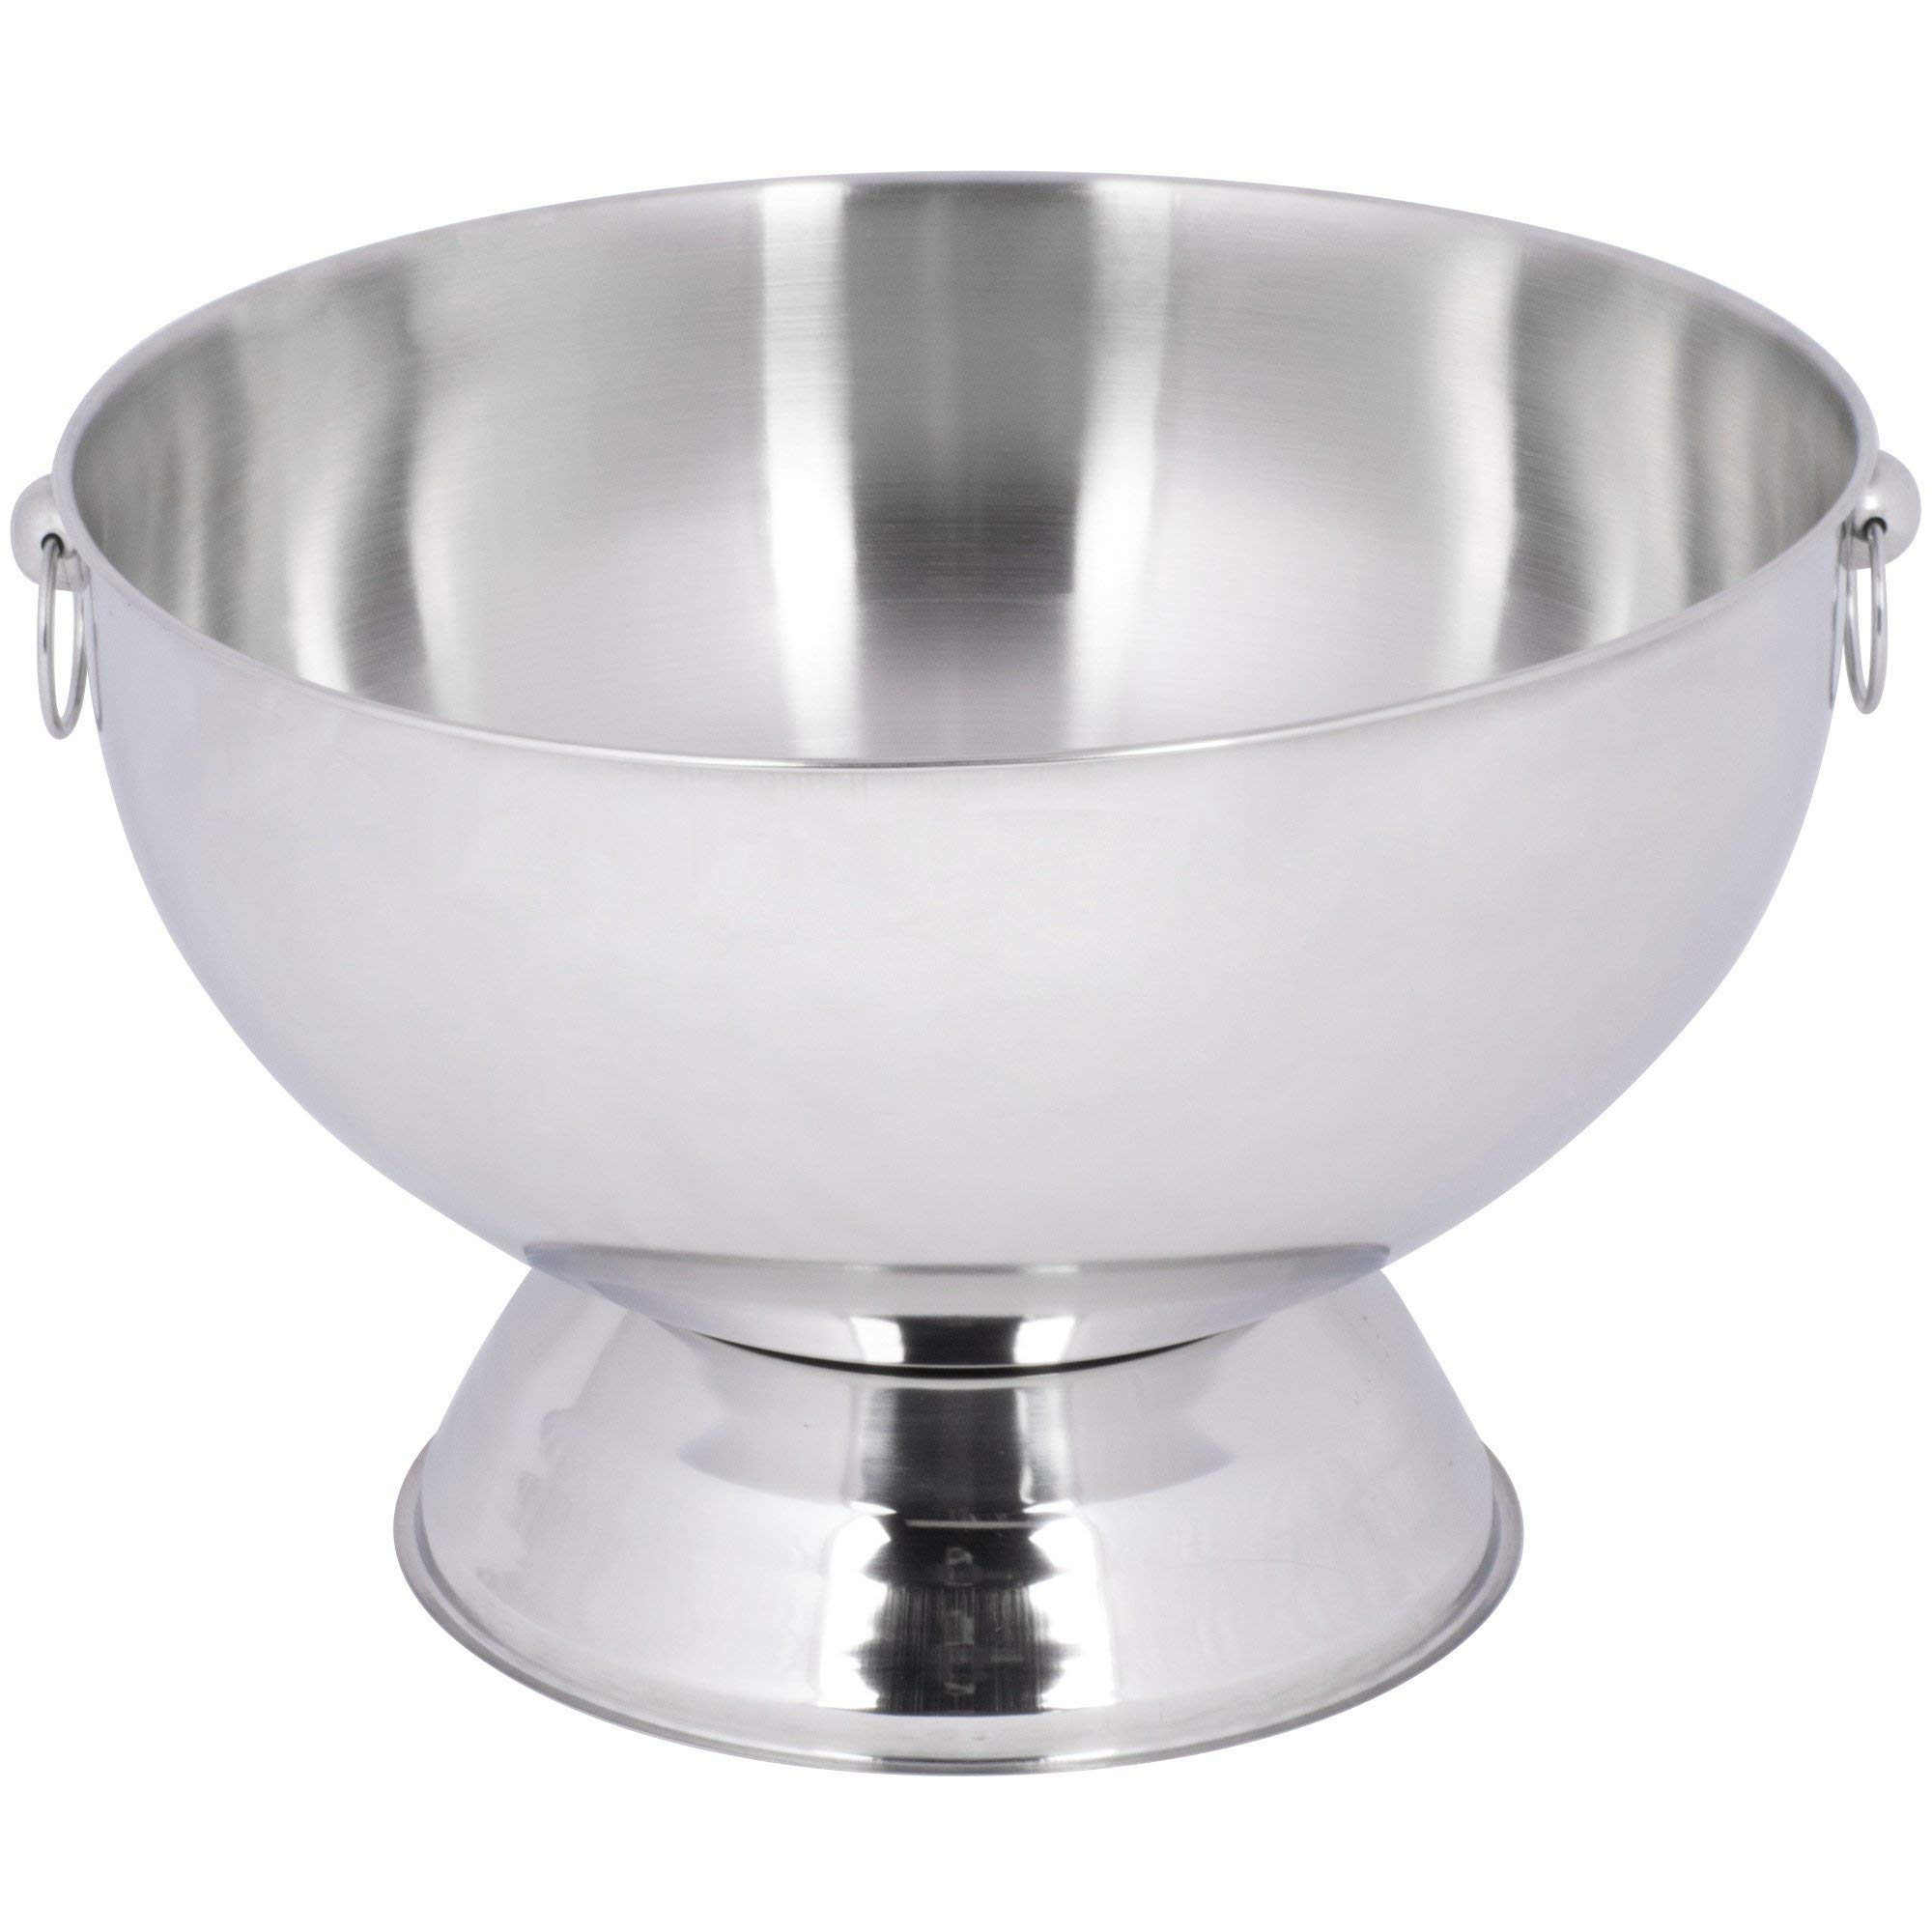 TableTop King 14 Qt. Stainless Steel Punch Bowl with Decorative Handle Rings and Mirror Finish